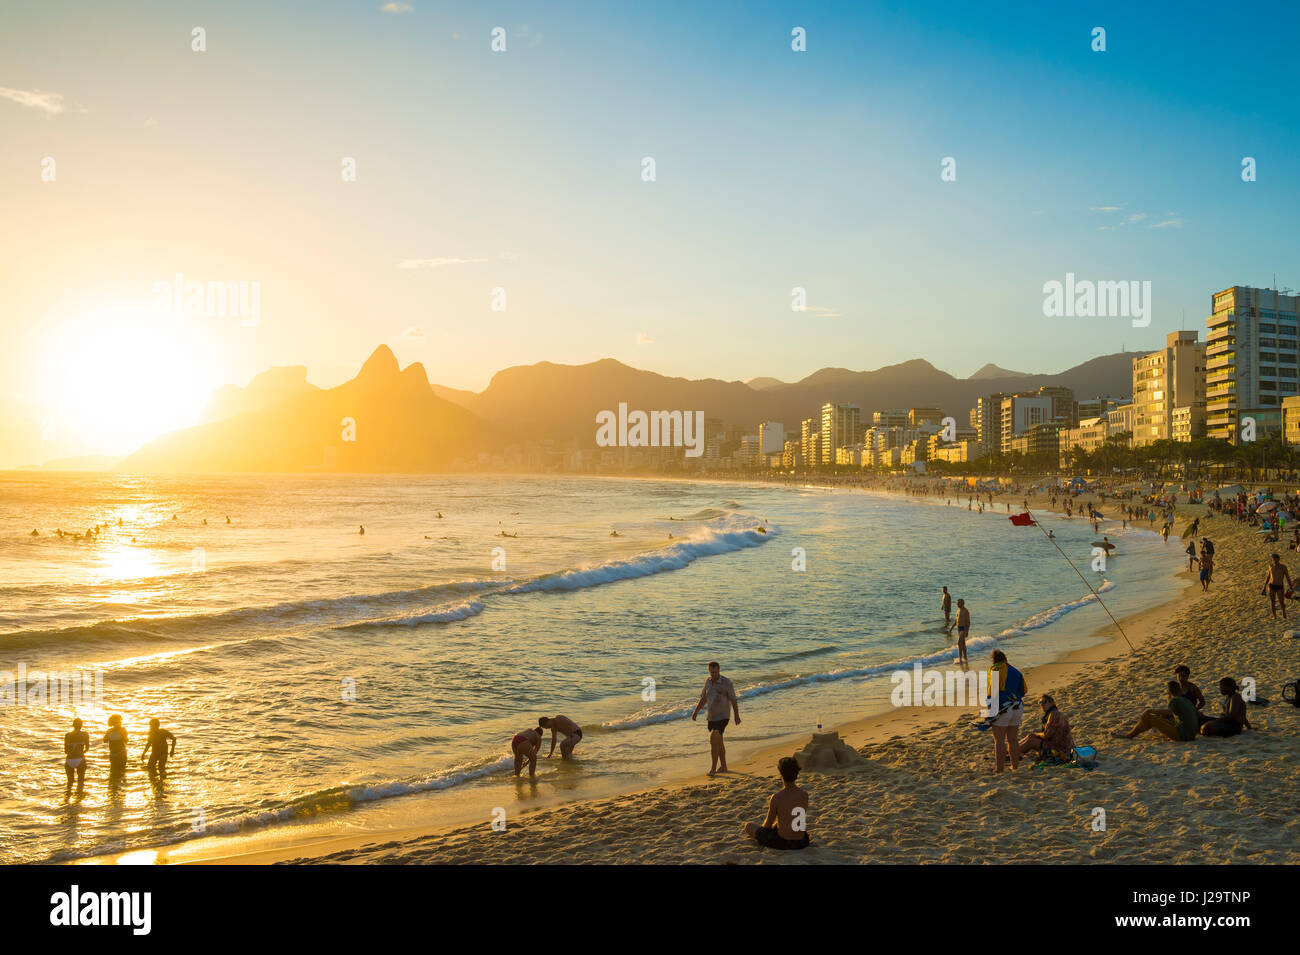 RIO DE JANEIRO - FEBRUARY 14, 2017: Visitors gather at the Arpoador end of Ipanema Beach to watch the sun set behind Stock Photo